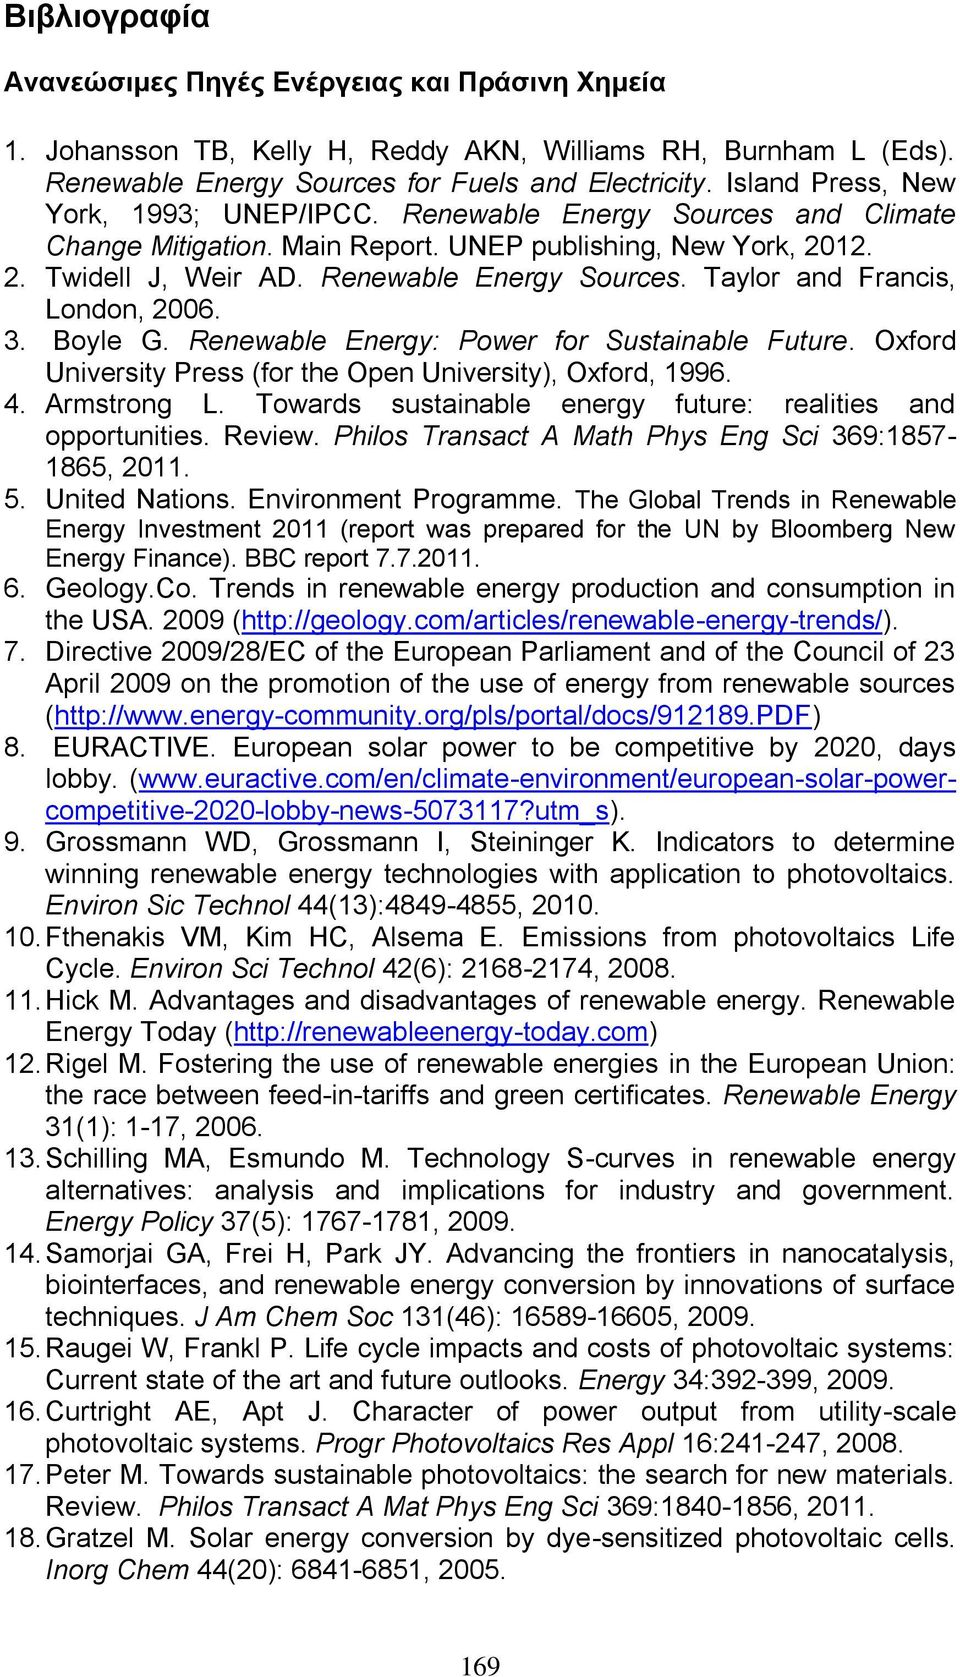 3. Boyle G. Renewable Energy: Power for Sustainable Future. Oxford University Press (for the Open University), Oxford, 1996. 4. Armstrong L.